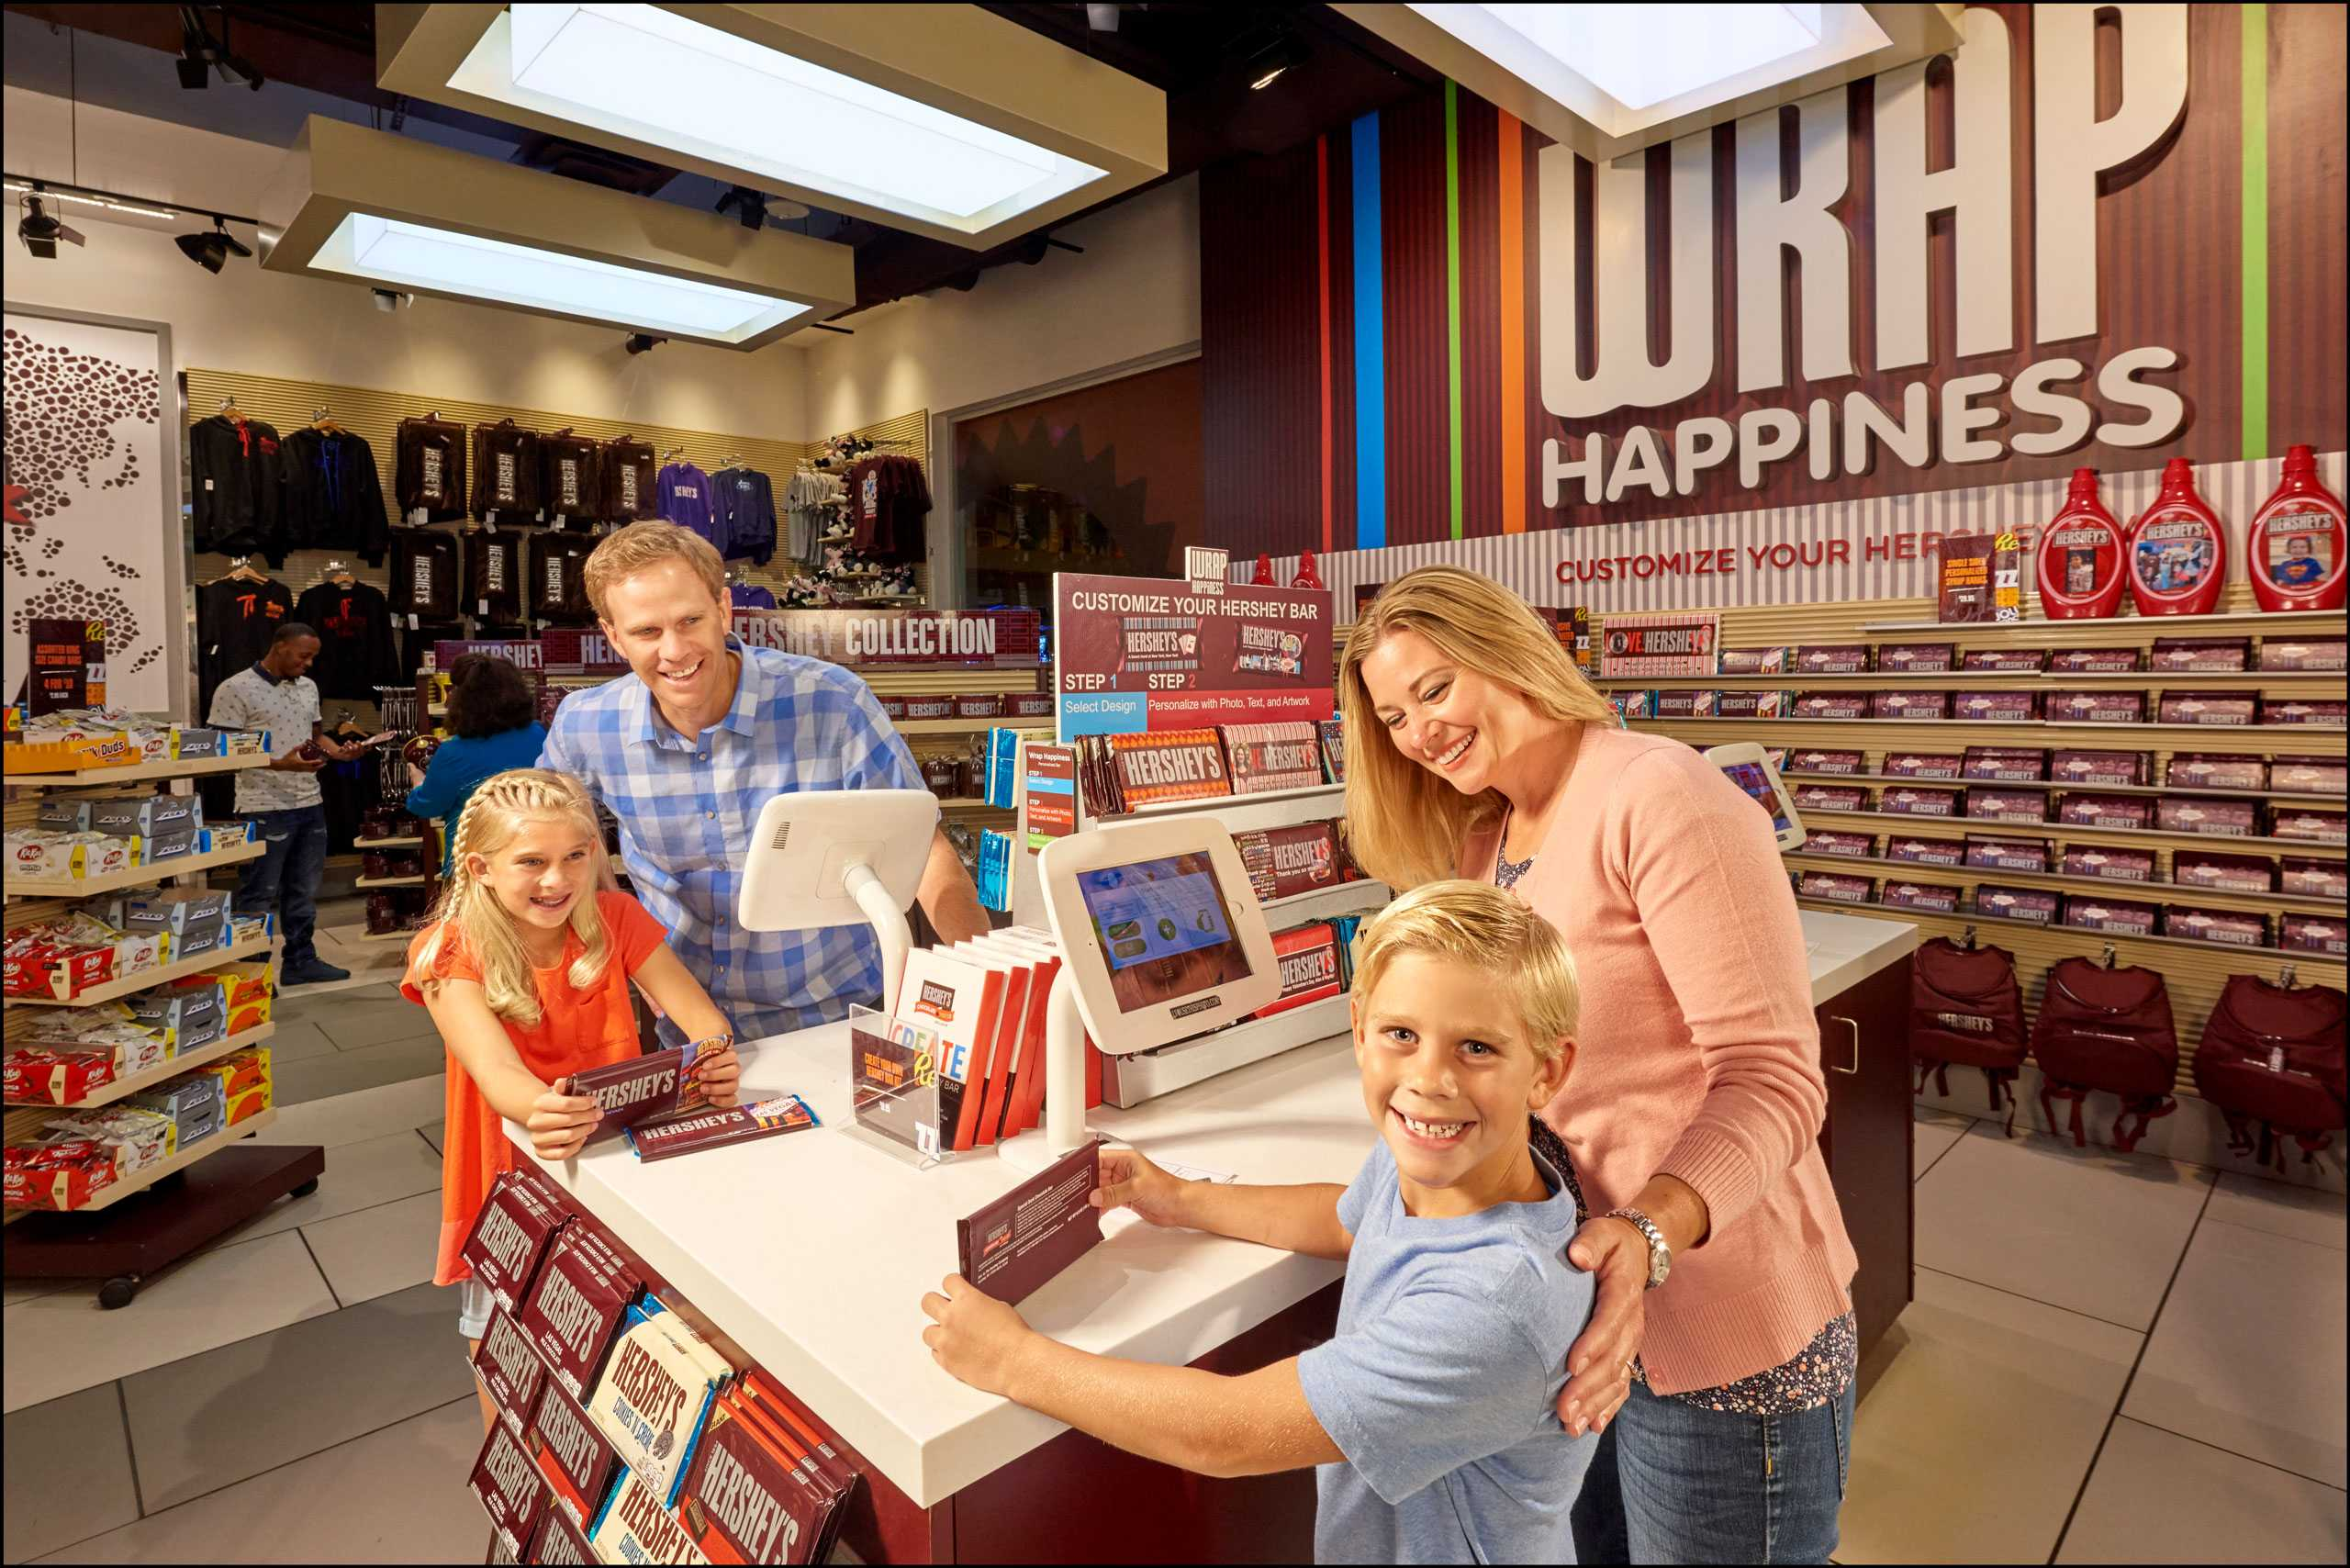 Wrap Happiness at the Hershey's Store Las Vegas